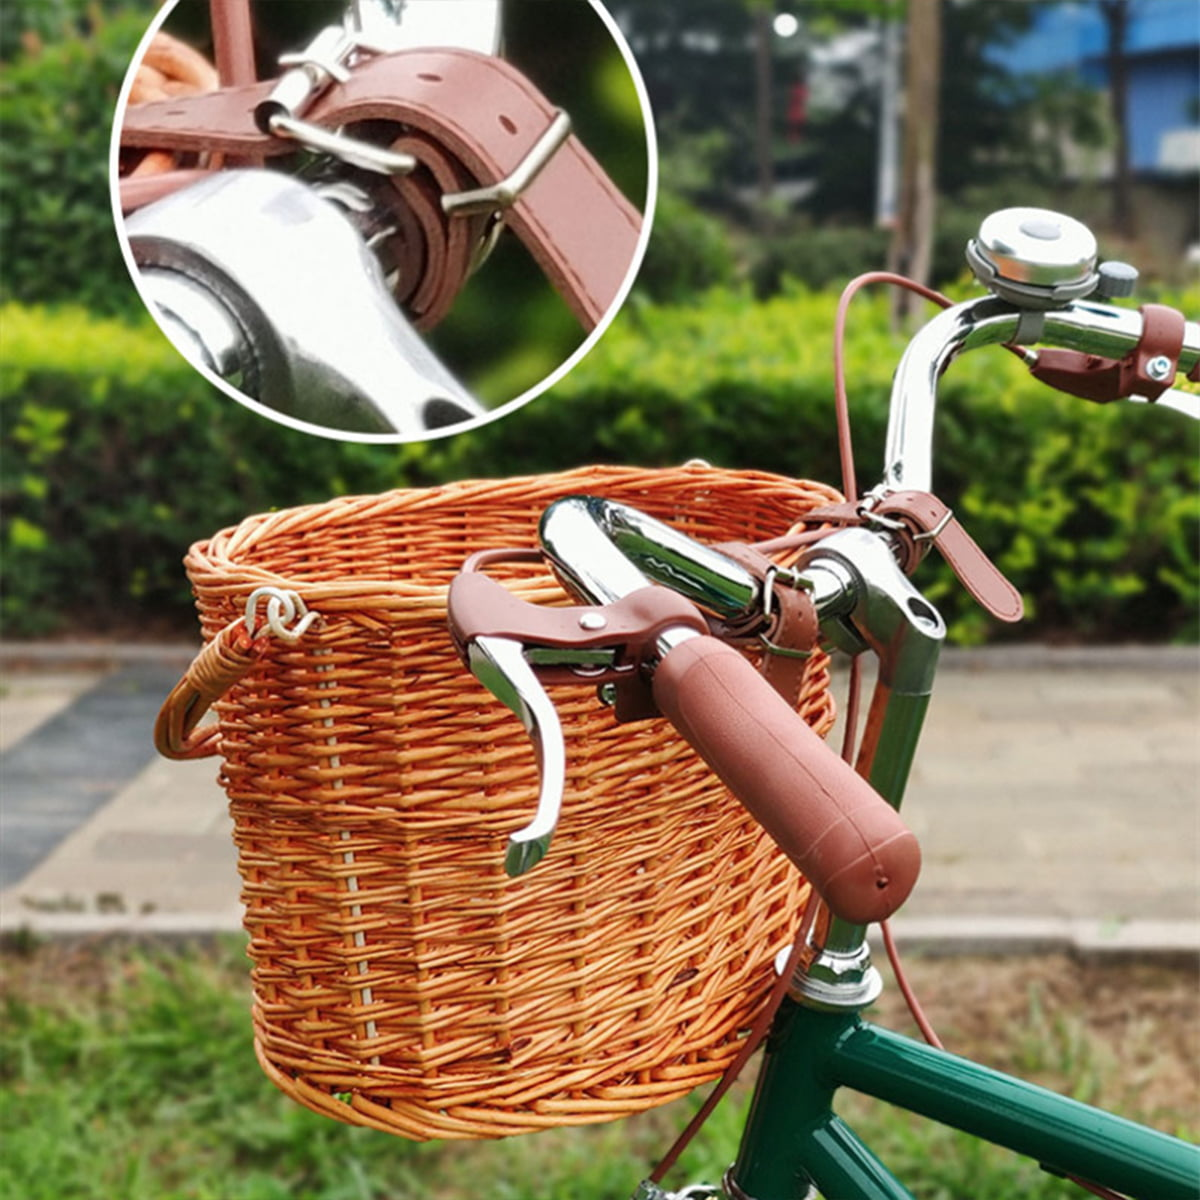 Retro Bike Basket Wicker Woven Bicycle Front Basket Handlebar Storage Basket CA